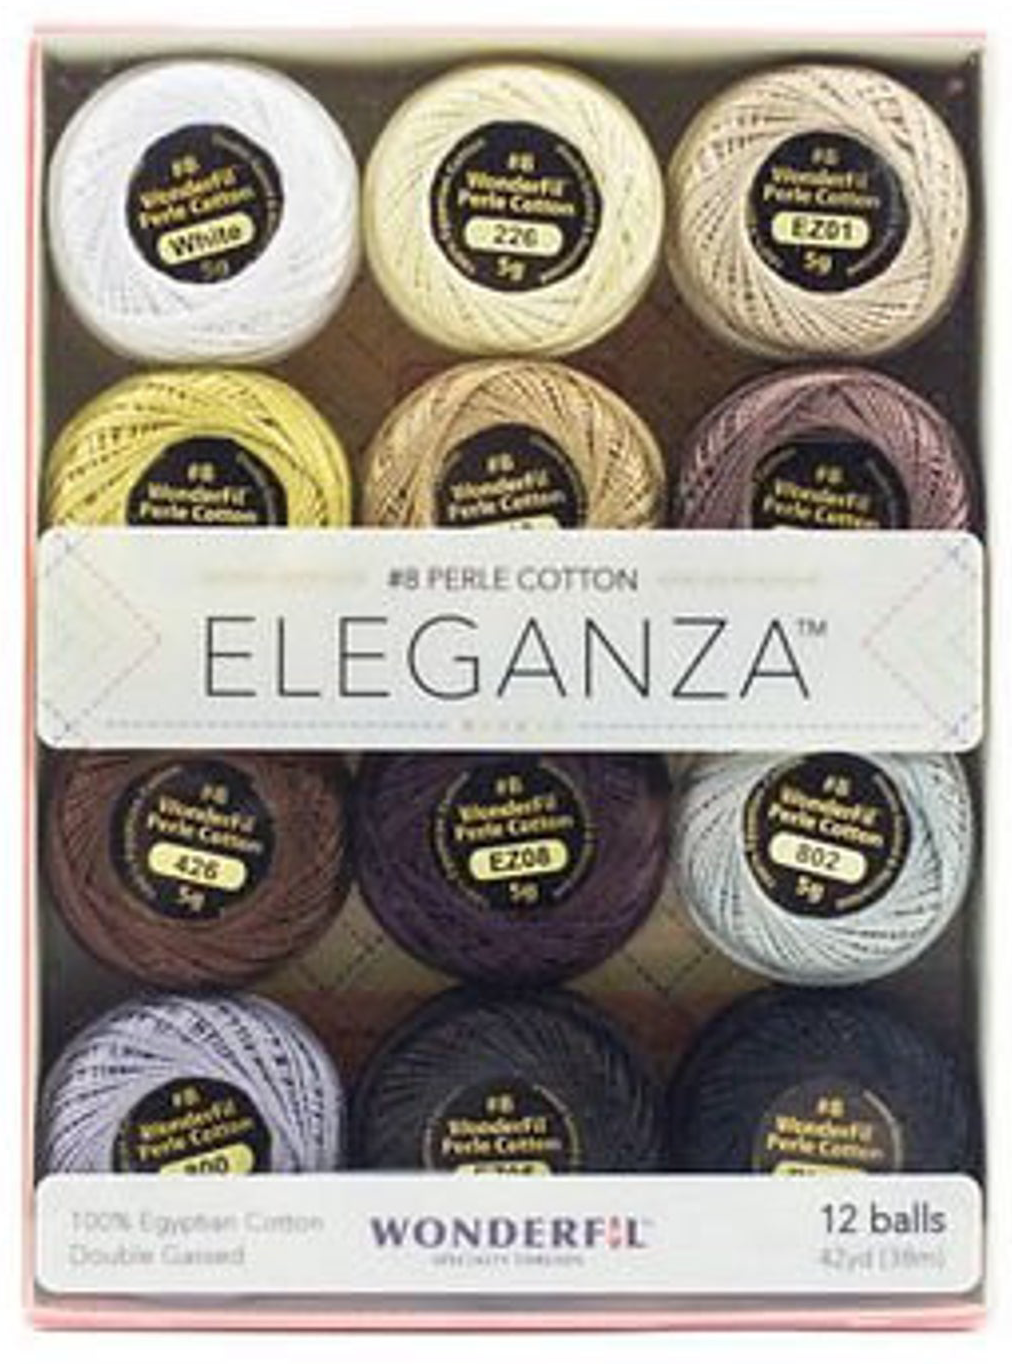 Eleganza #8 Perle Cotton/Neutral (12 ct. collection)